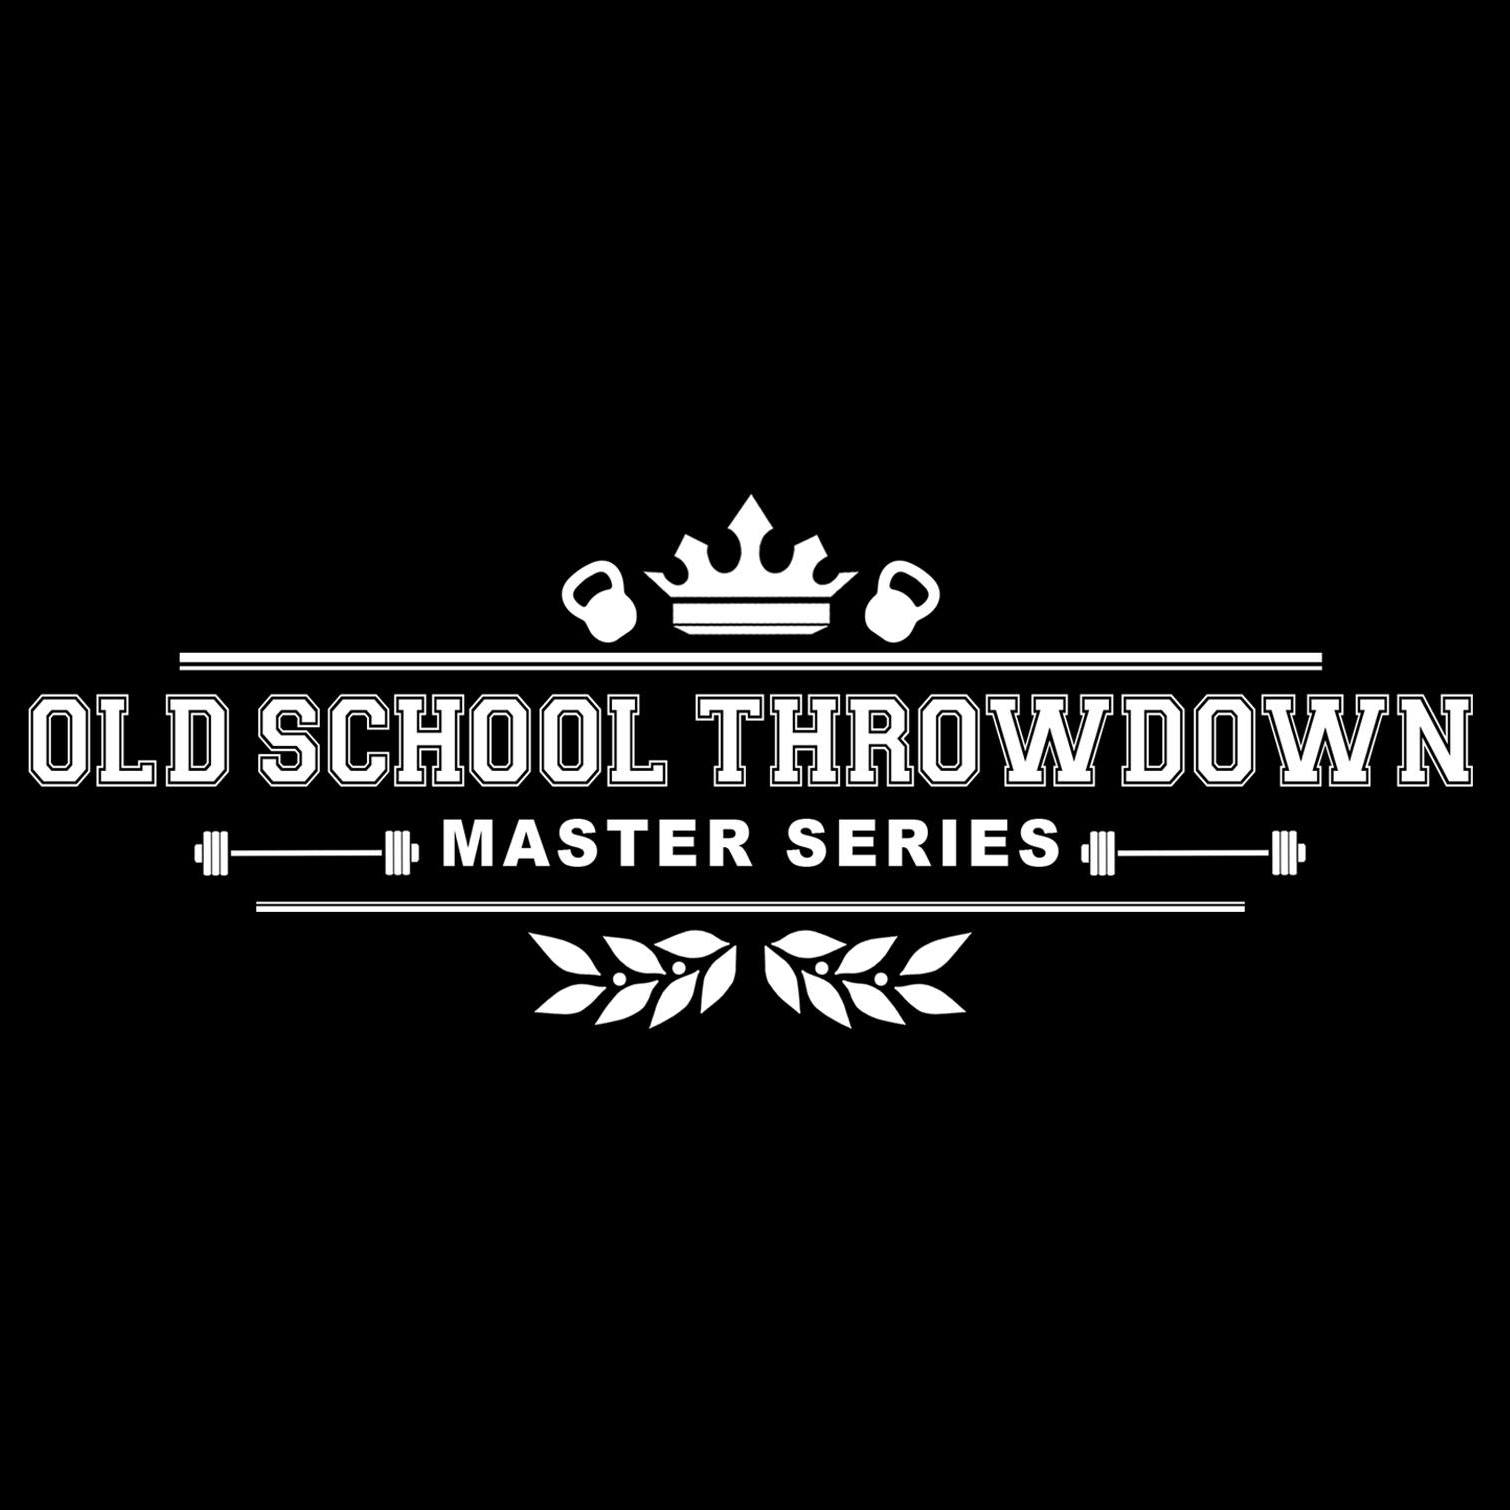 Old School Throwdown